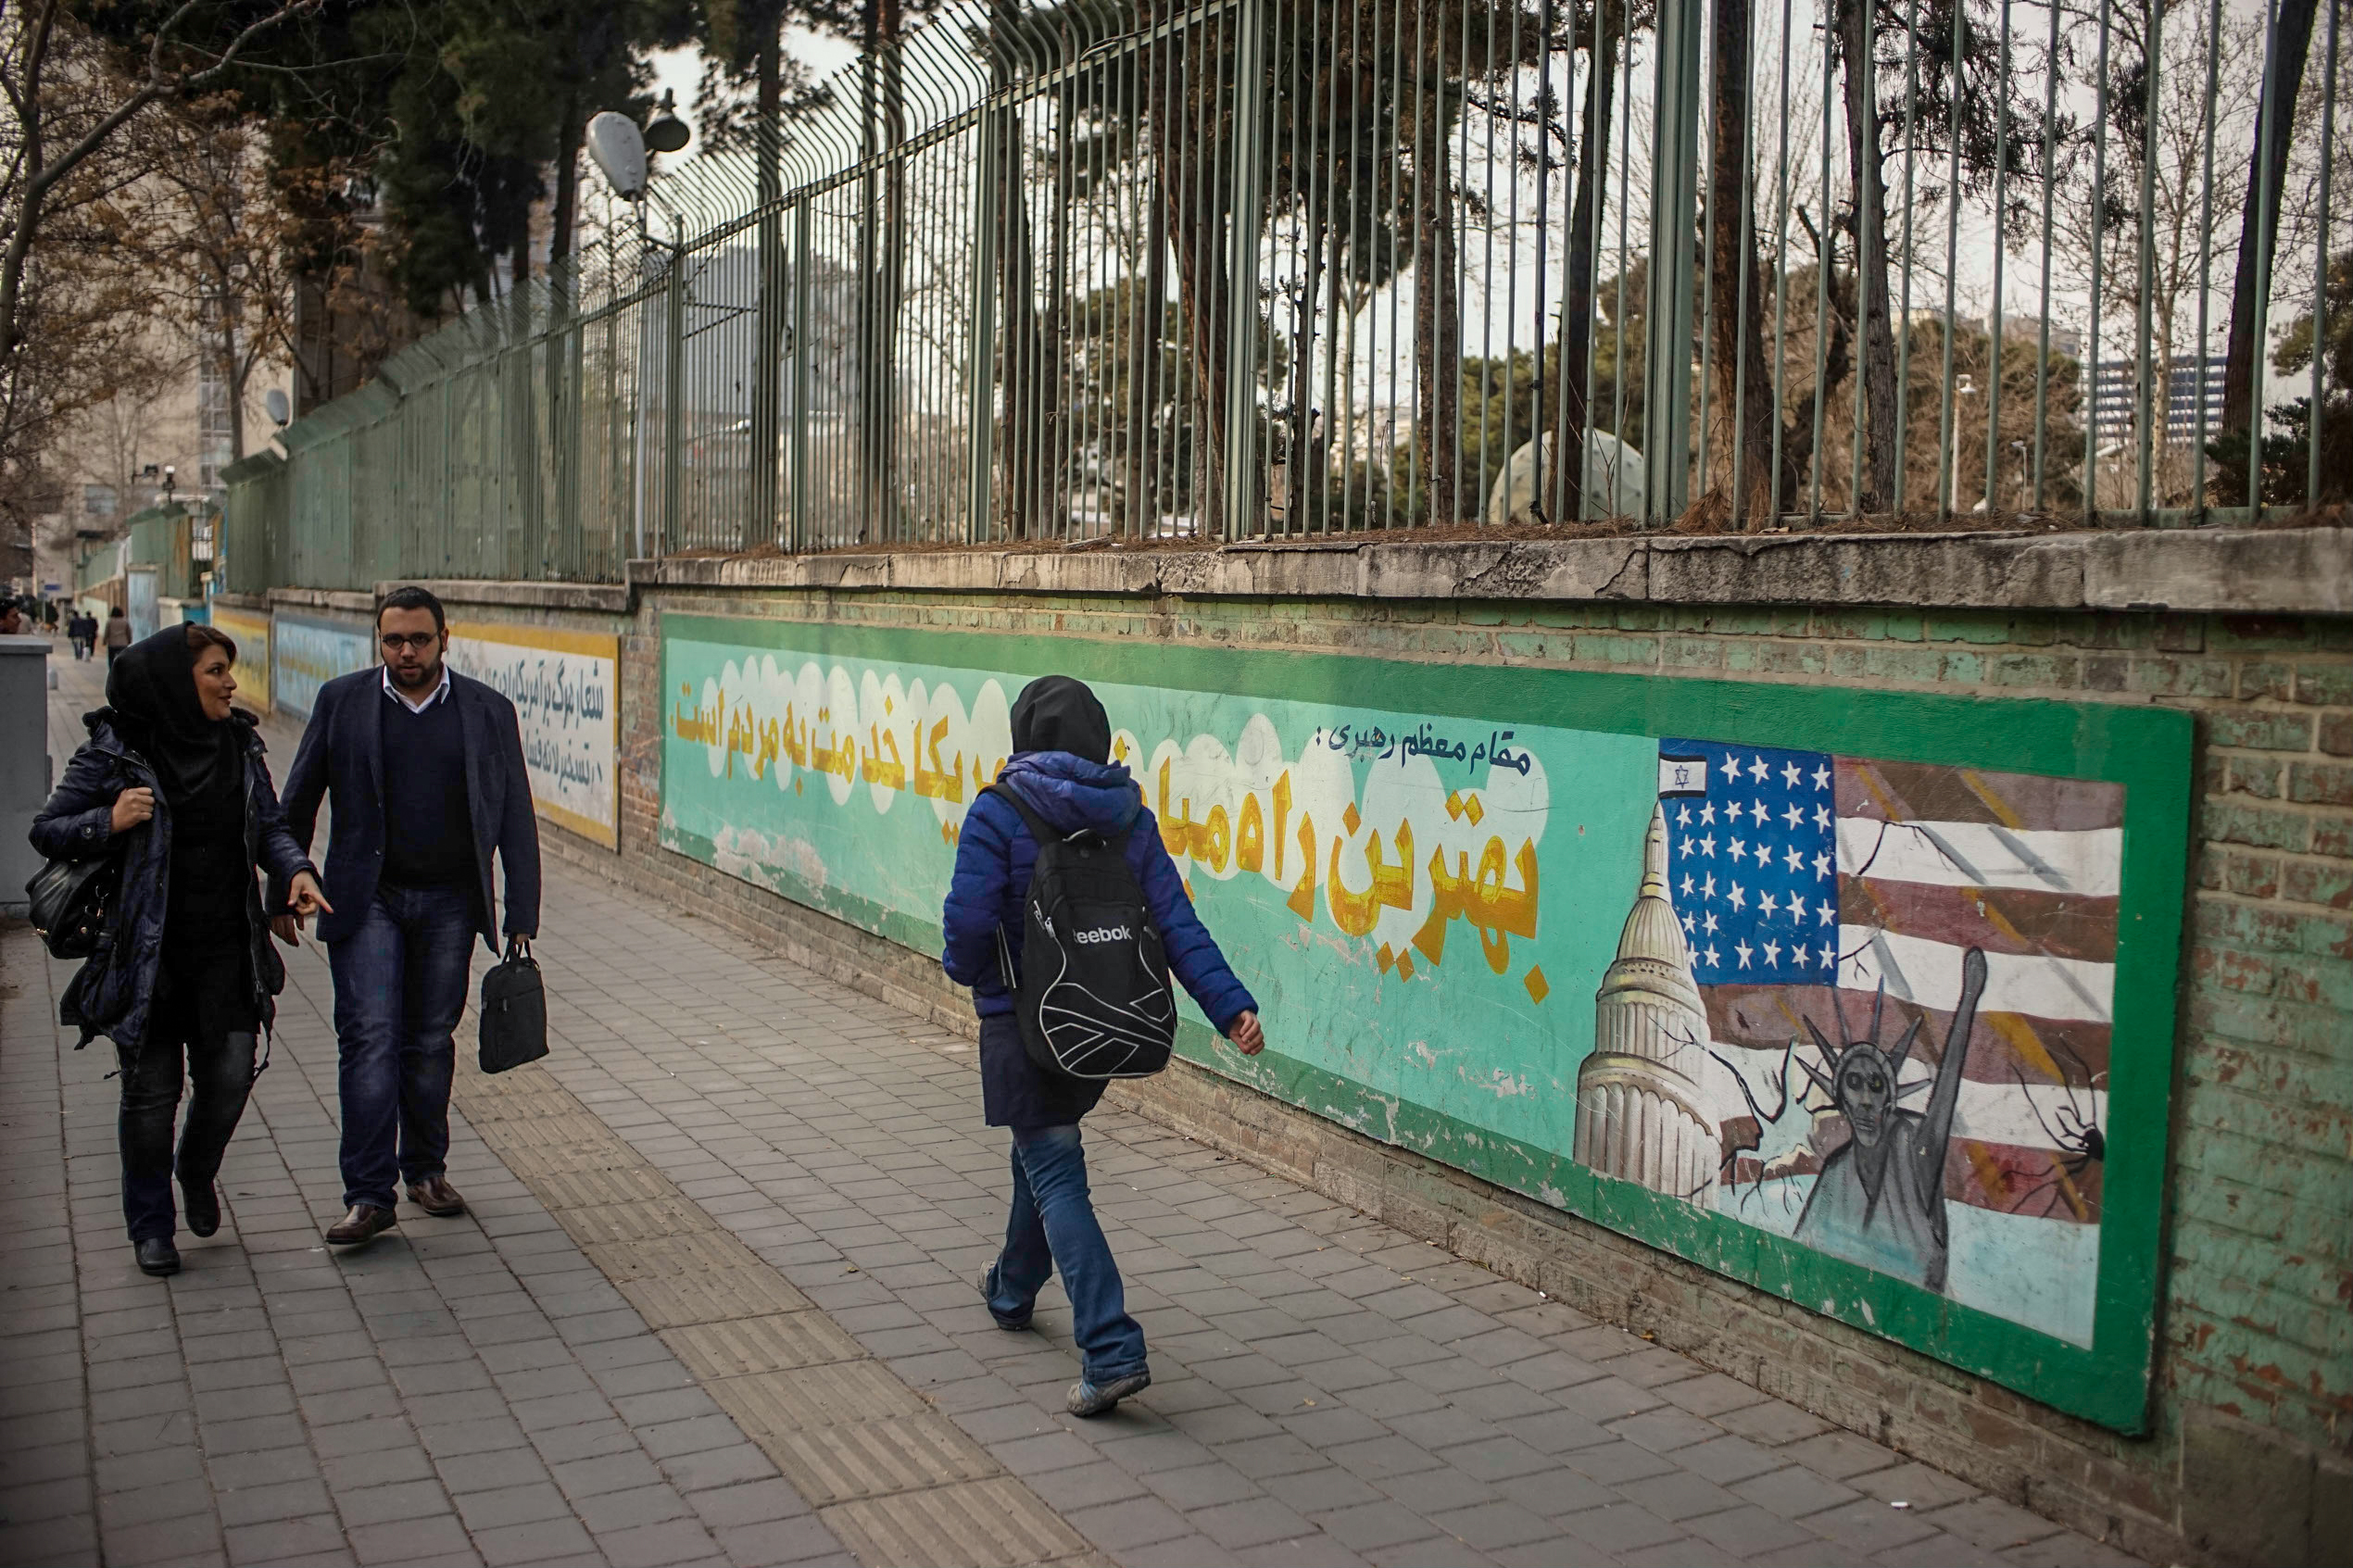 Exterior wall of the former U.S. embassy compound in Tehran, covered with anti-American graffiti. While most Iranians pass by the massive compound and pay it no interest, the Iranian government stages anti-American protests here on the anniversary of the 1979 takeover. While there's an undeniable strain of anti-Americanism in parts of Iranian society, these kinds of displays were rare, and stood in contrast to the kindness and curiosity from most of the Iranians we met.